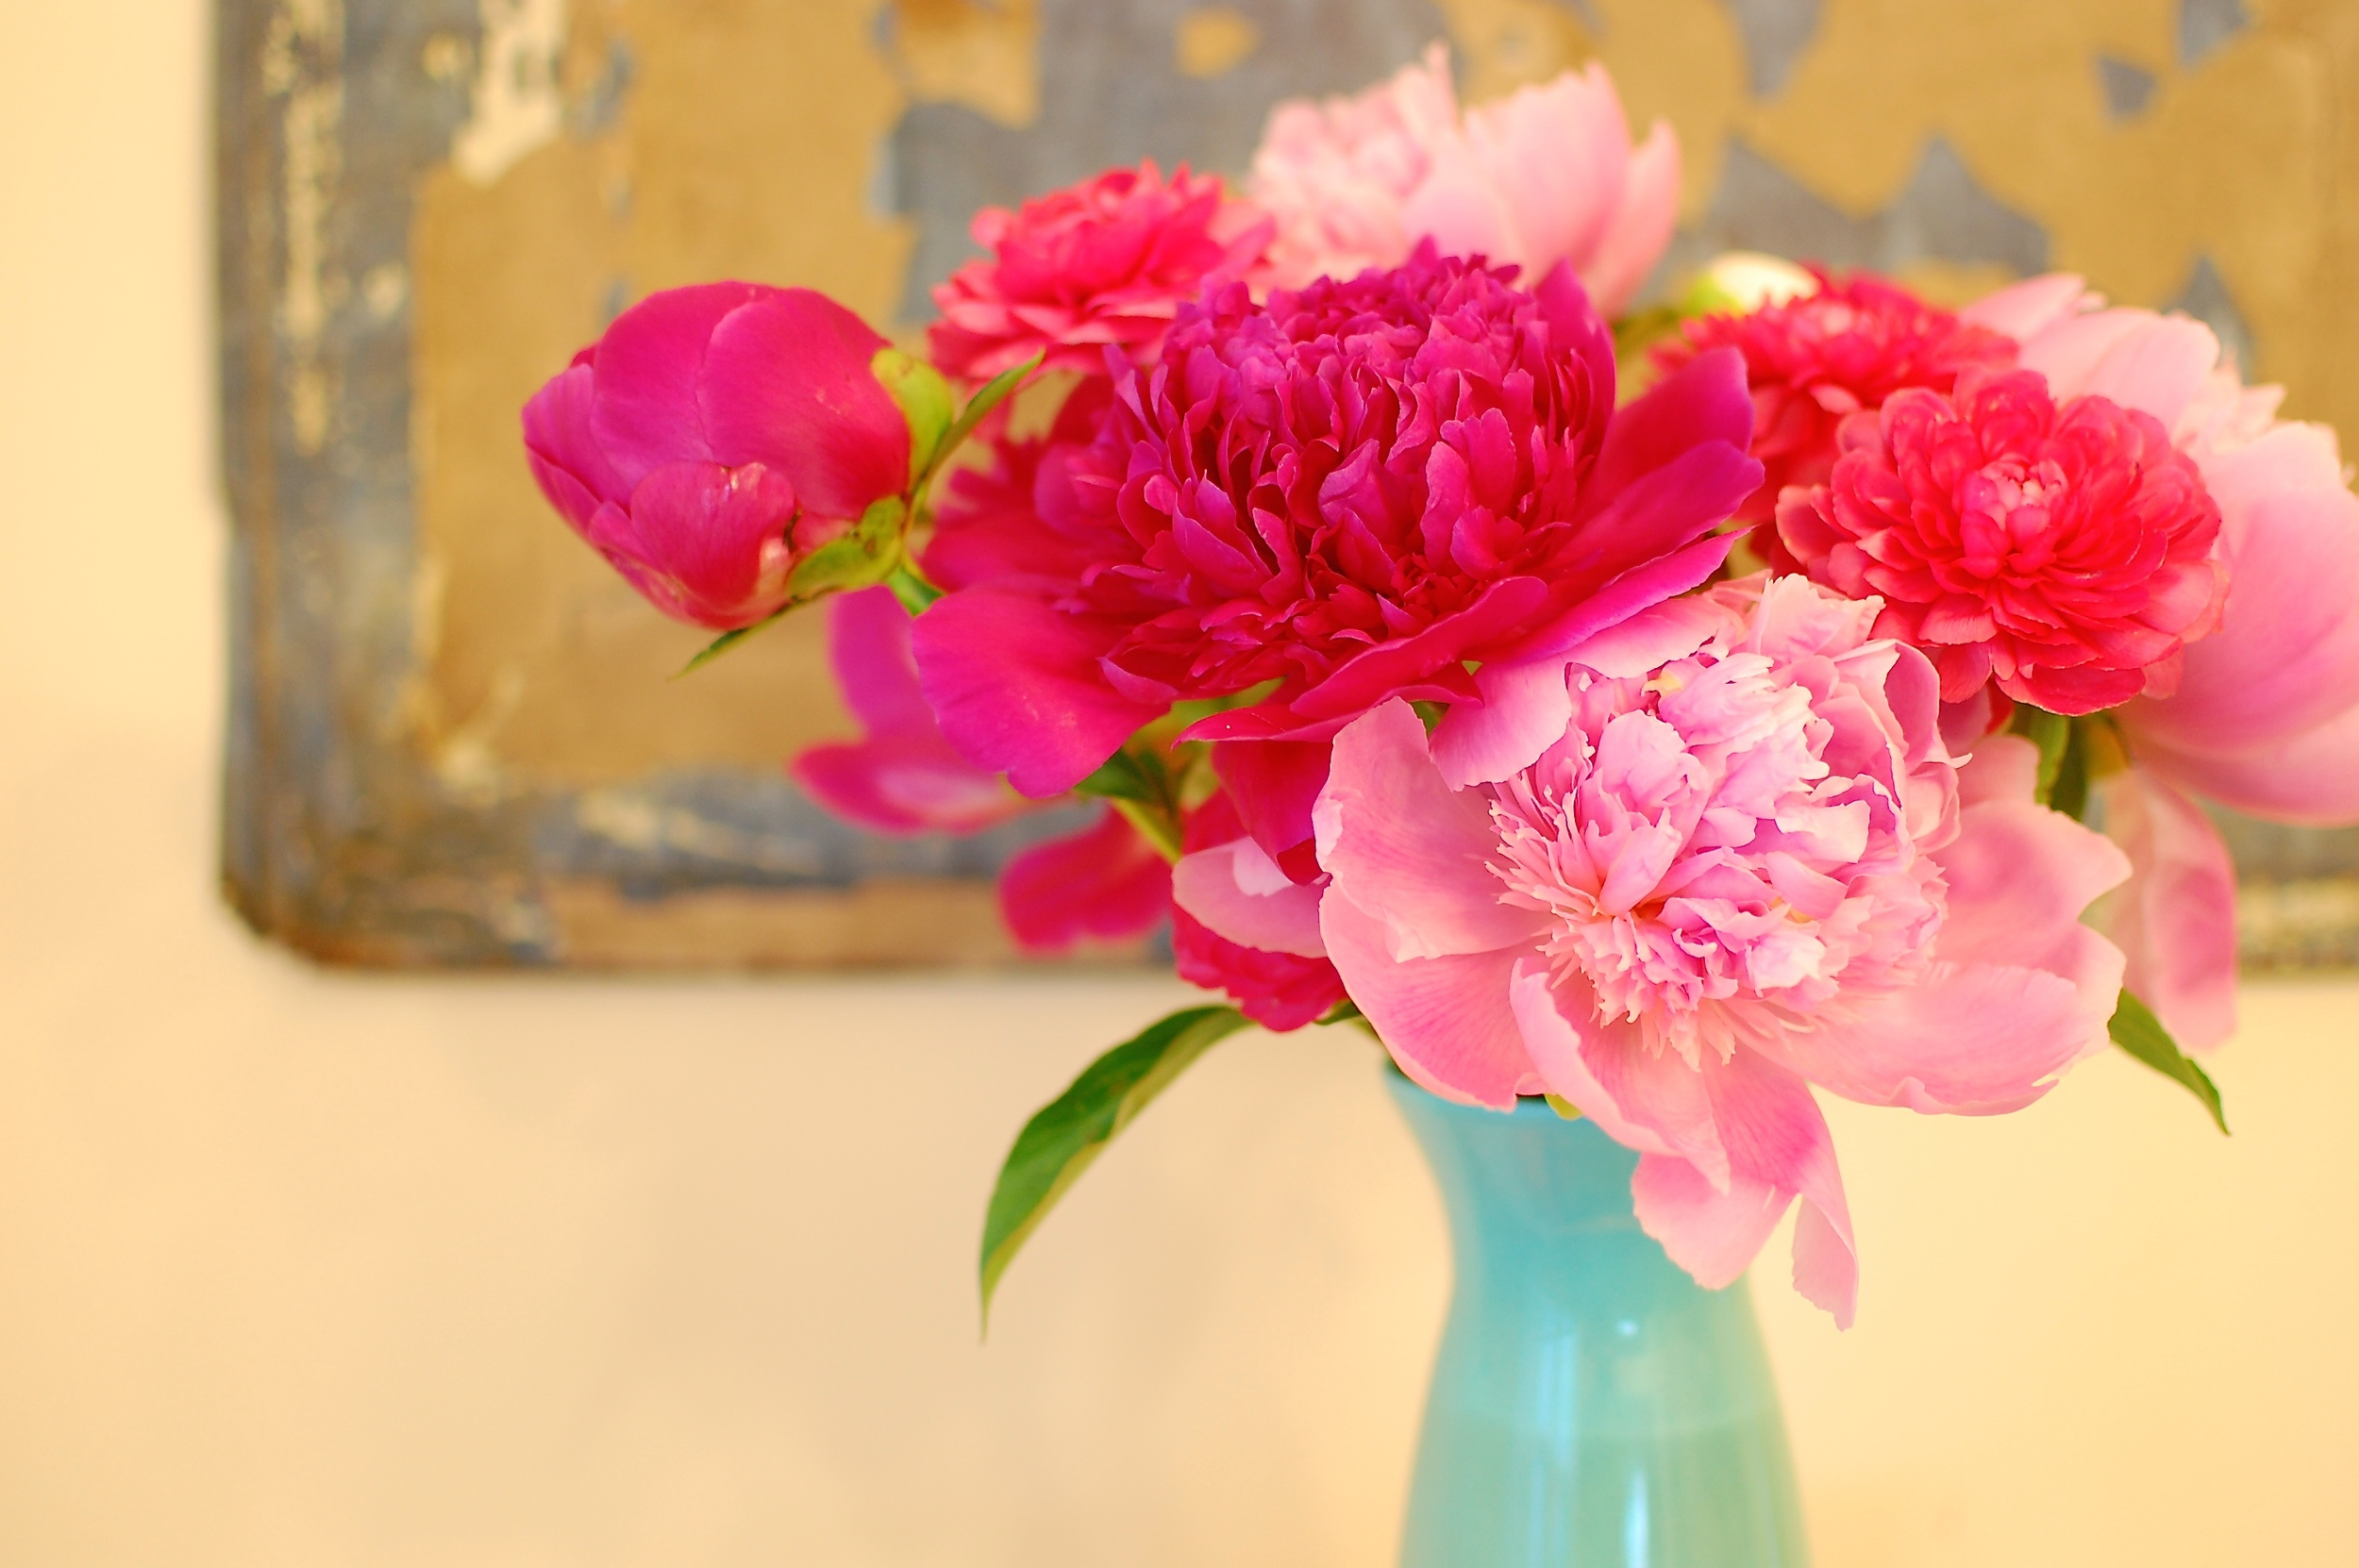 Peonies and ranunculus - the perfect pair